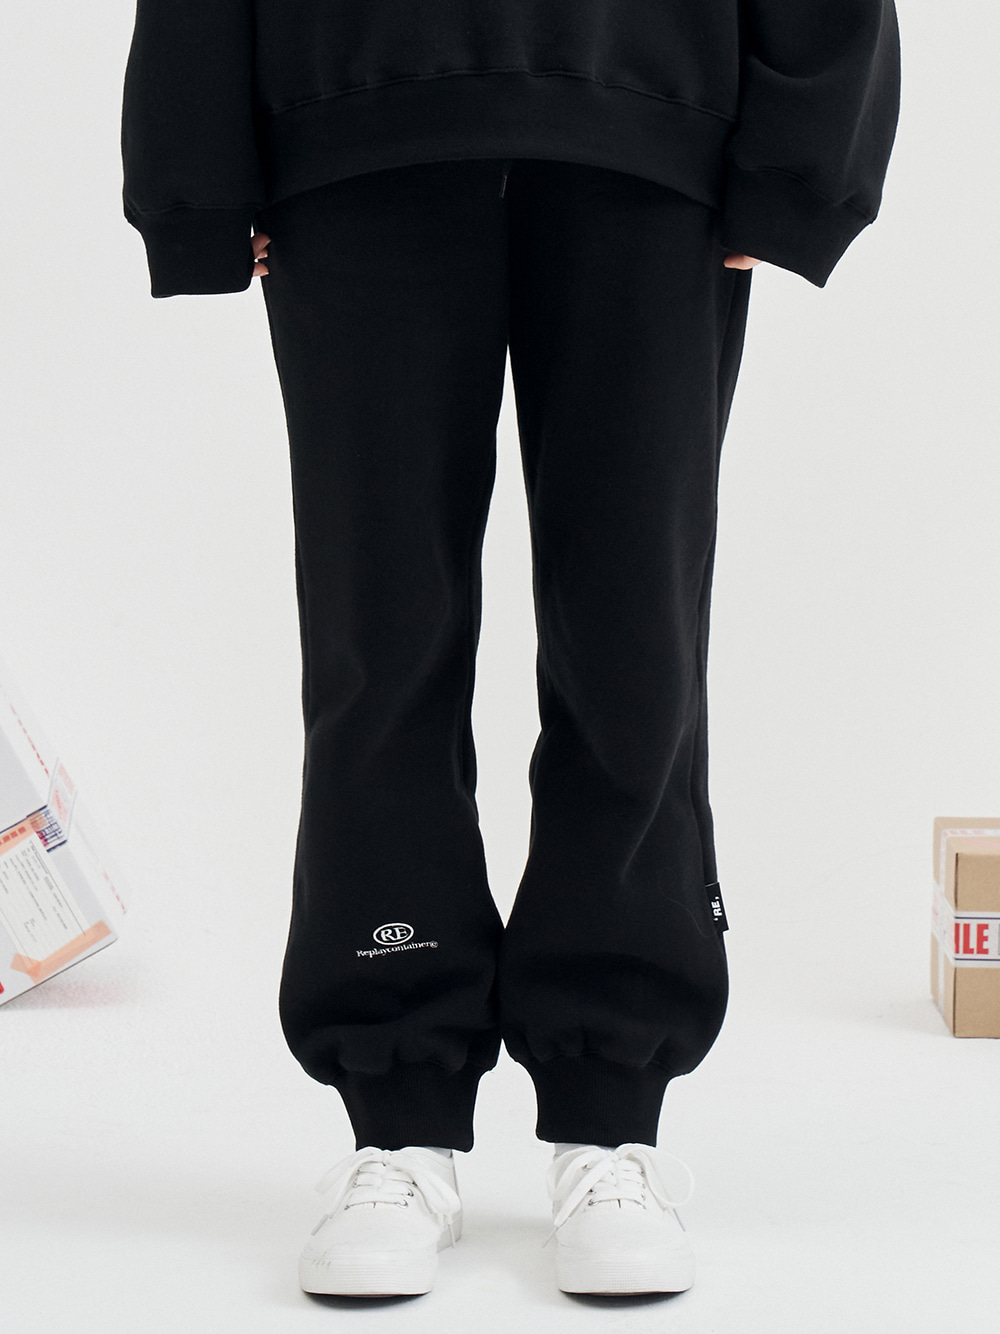 RE capsule logo jogger pants (back)